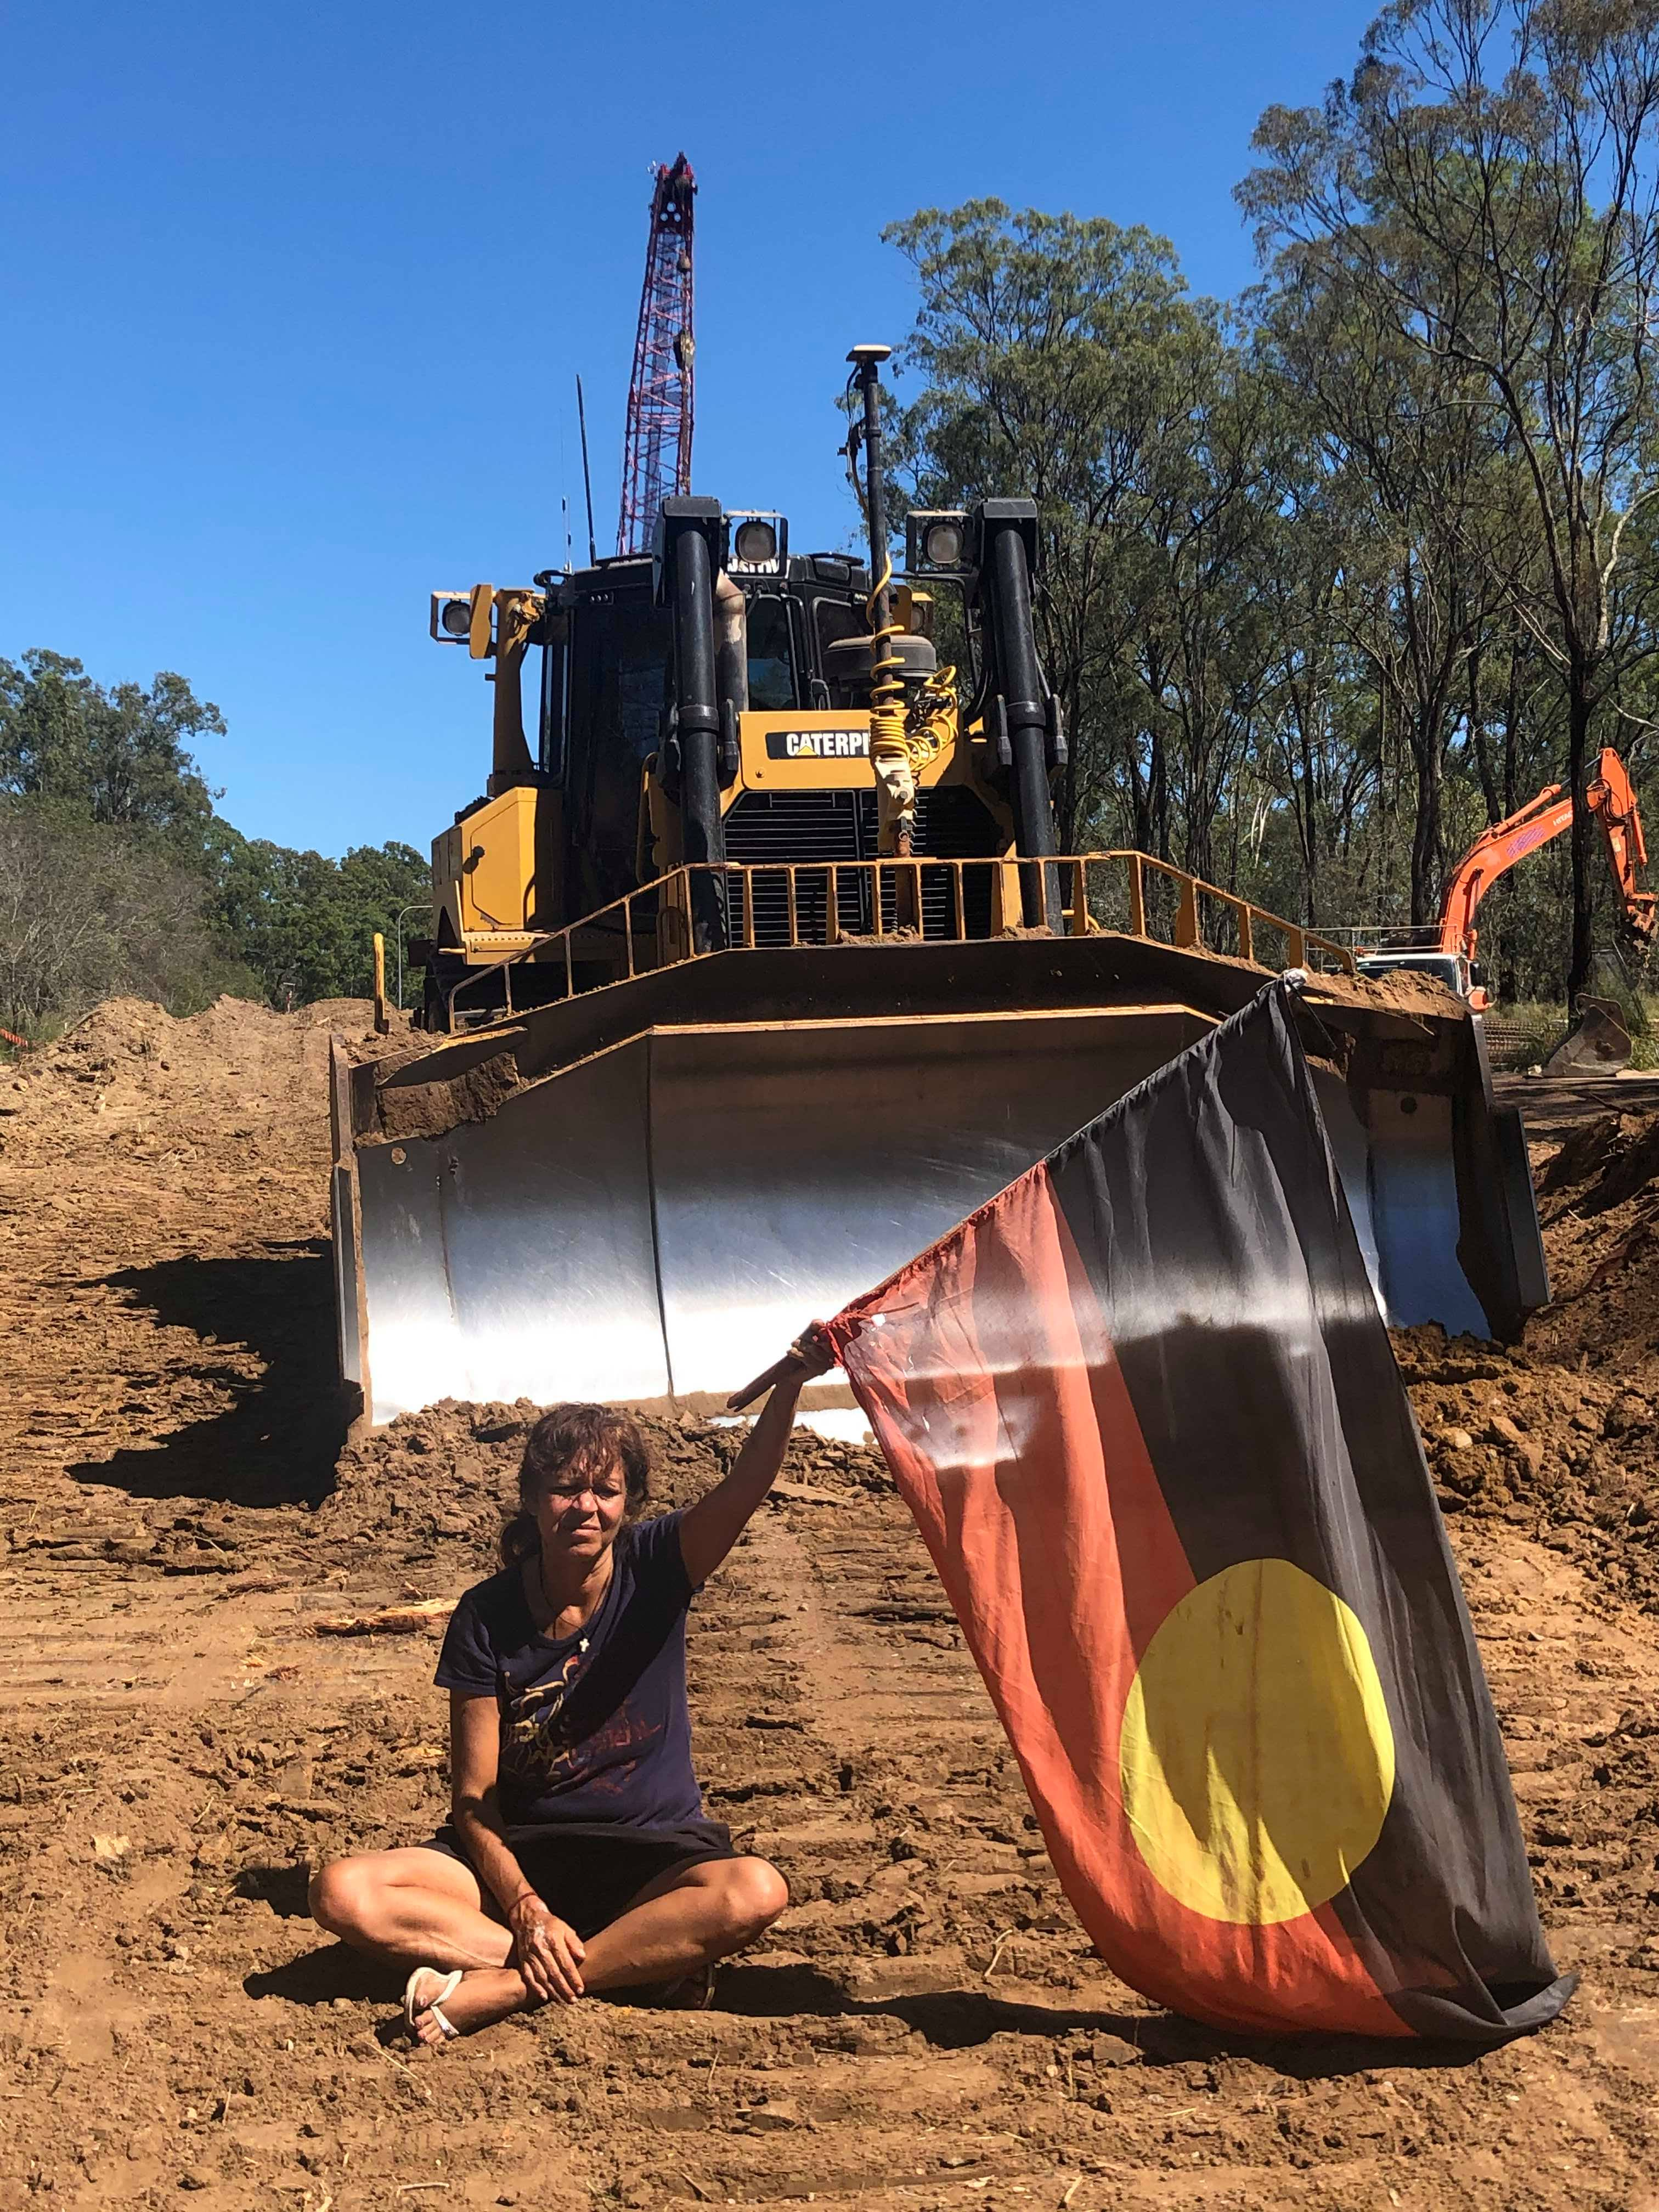 Image: Goori Sovereign Land Council - Woman with Aborignal flag sits in protest in front of a bulldozer